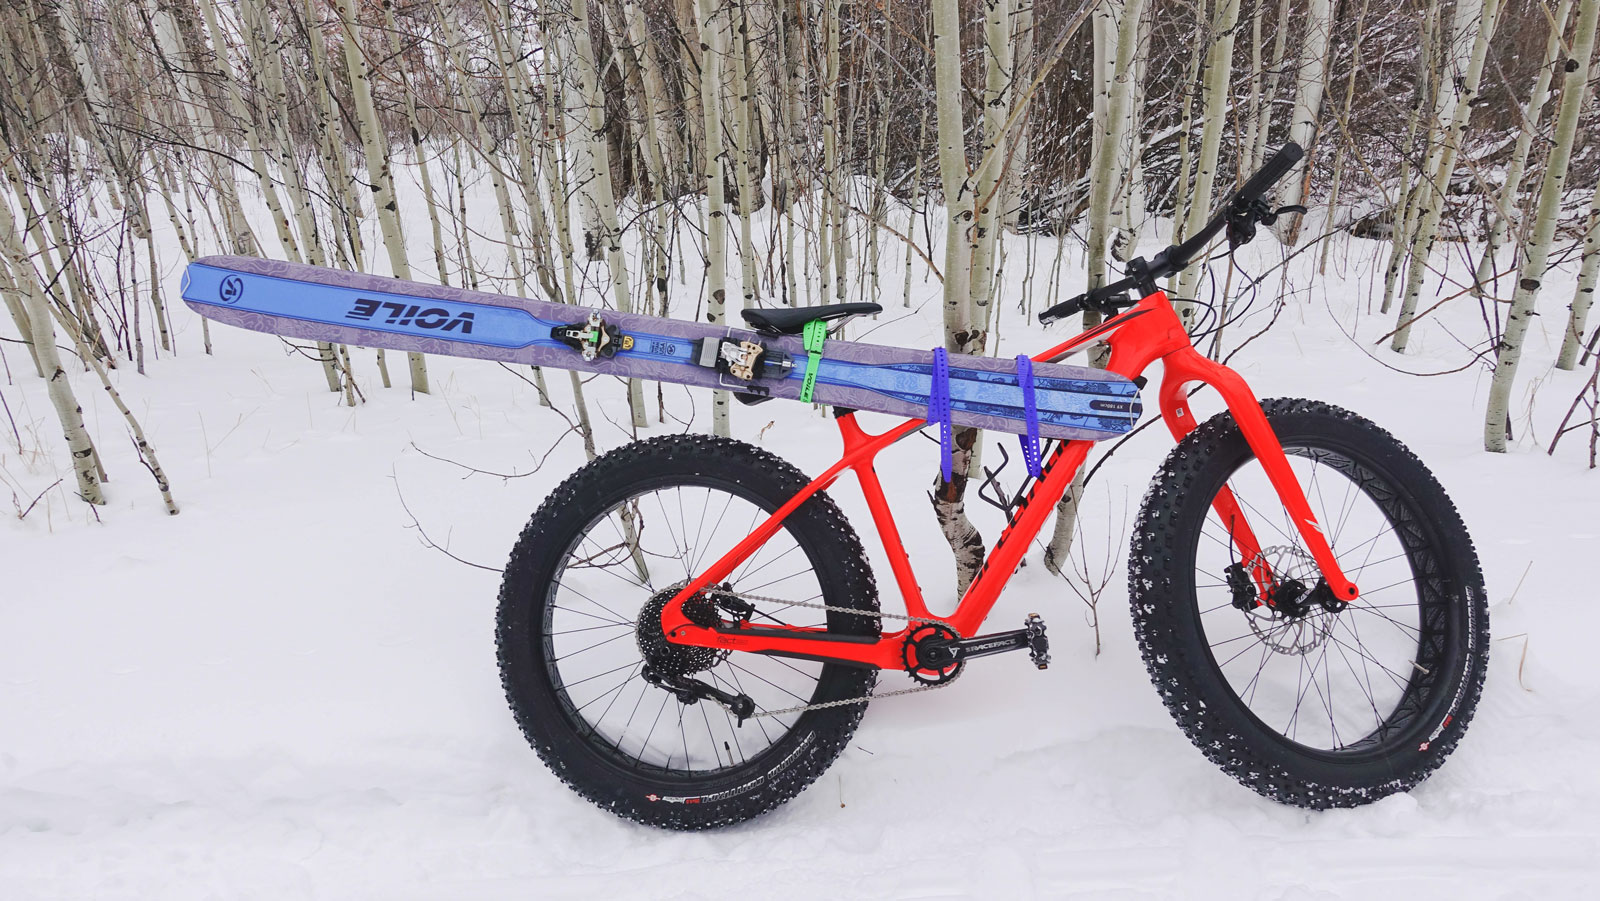 Snow bike with skis mounted to the frame.